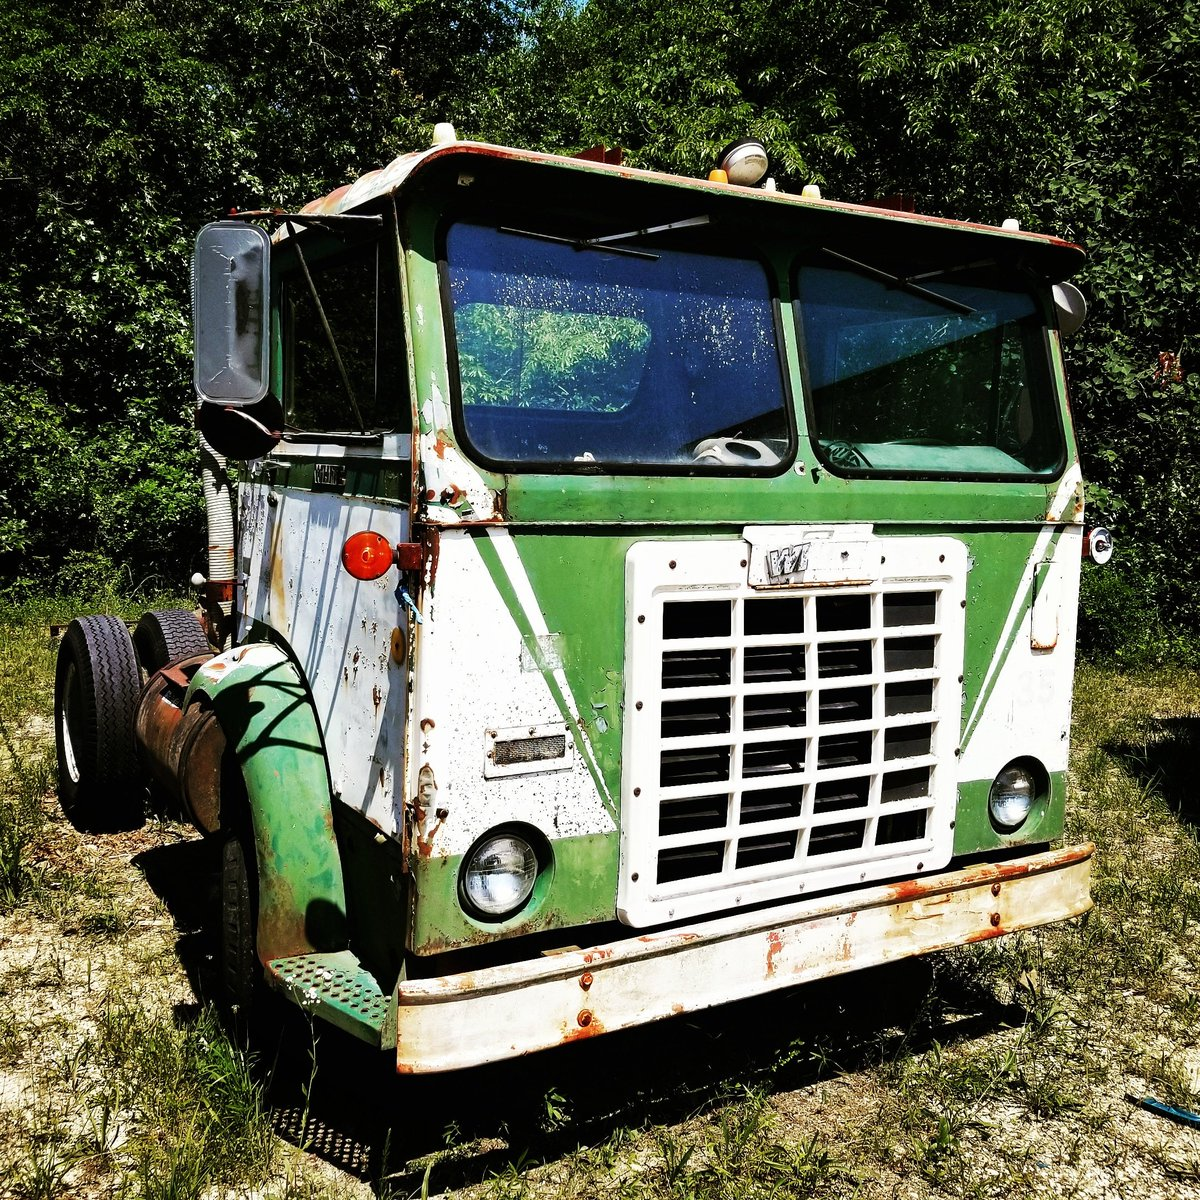 Came across this old beauty the other day, 1960s White Cabover  #cabover #White #Trucking #Truckporn #Truckerlife